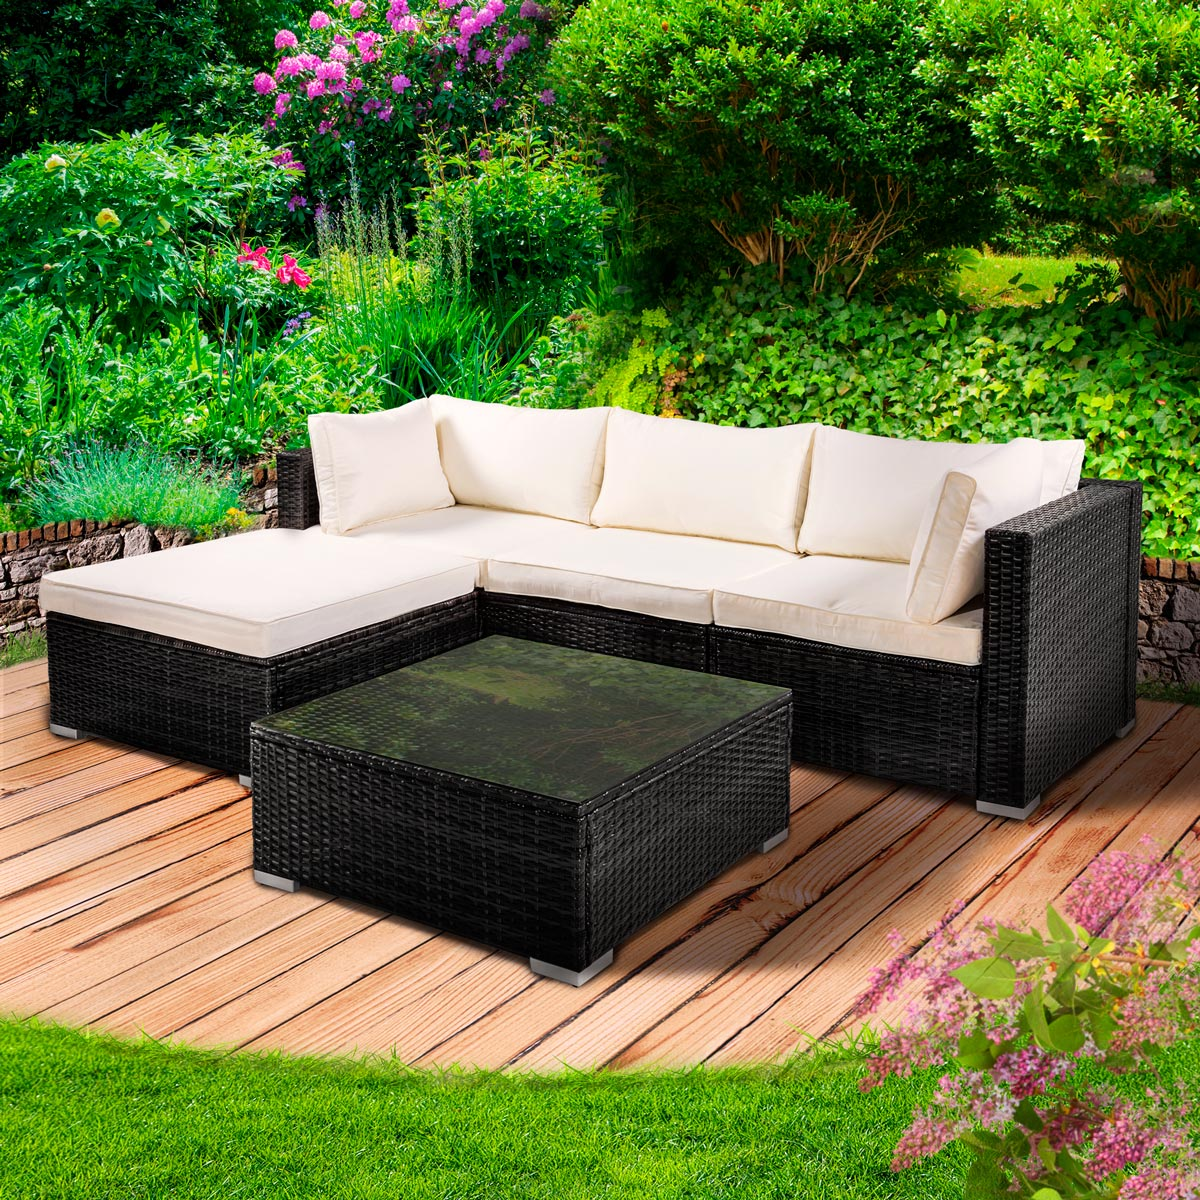 Lounge Mobel Artelia Loungemobel Set Estoria S Fur Terrasse Und Garten